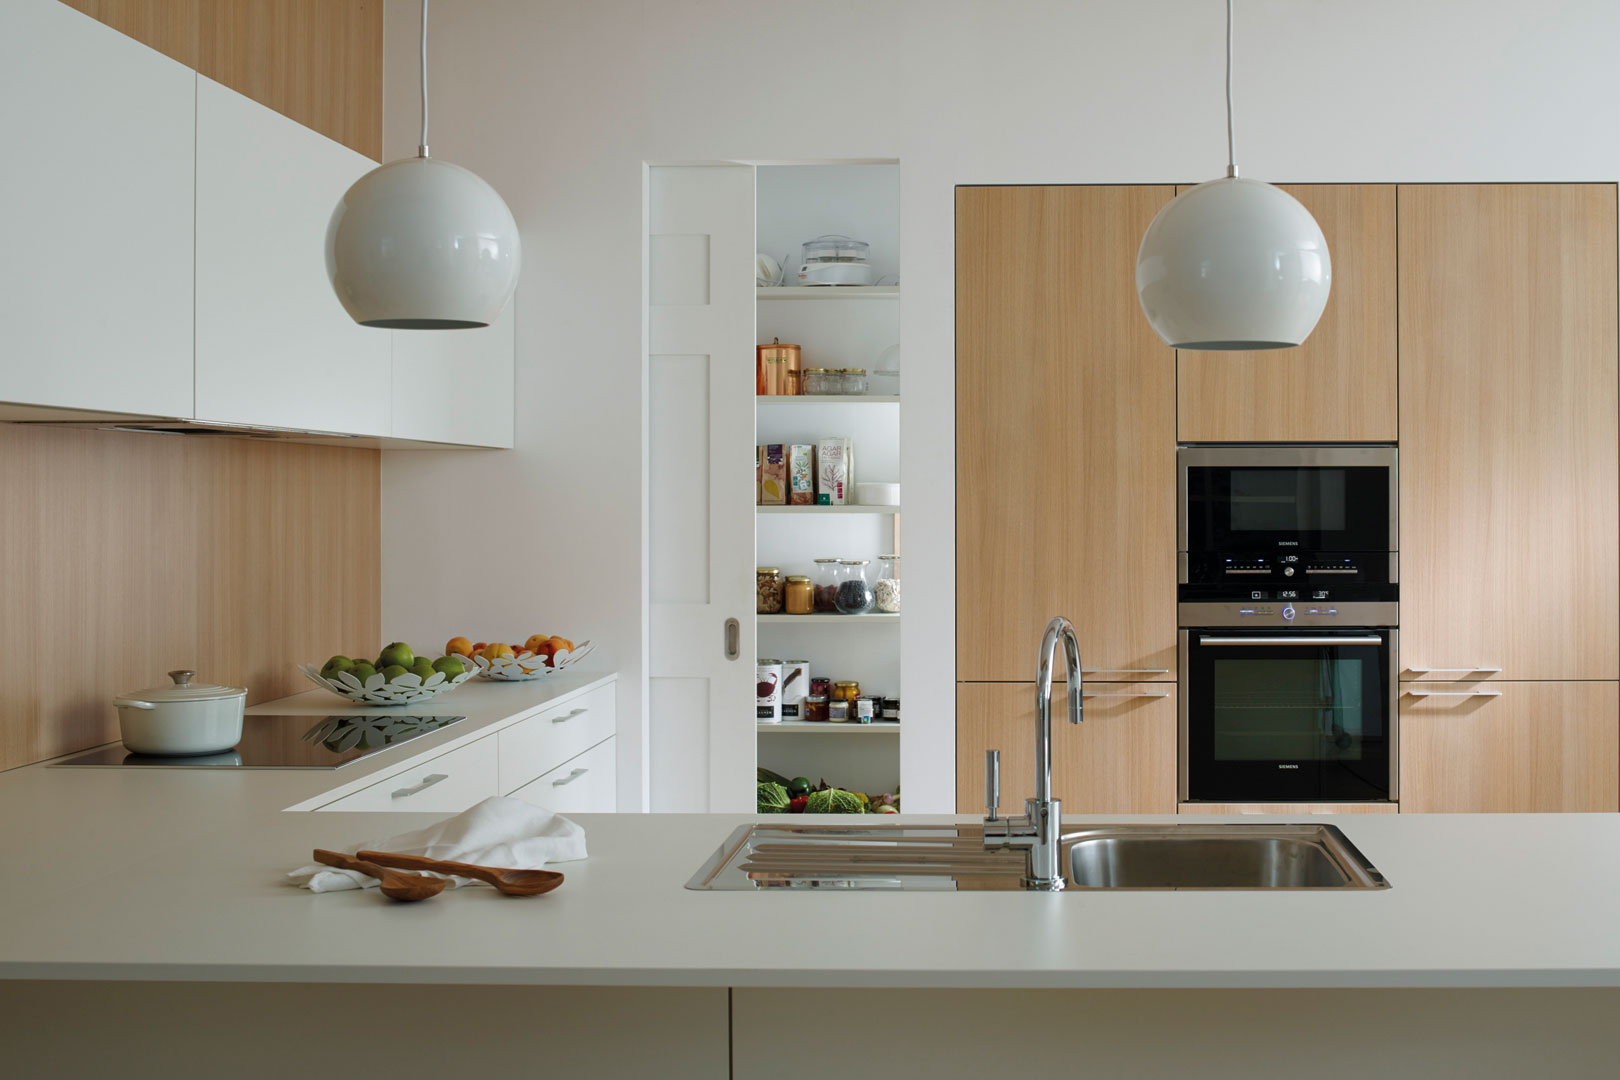 Tendencias cocinas 2018 cocinas santos santiago interiores for Tendencias muebles